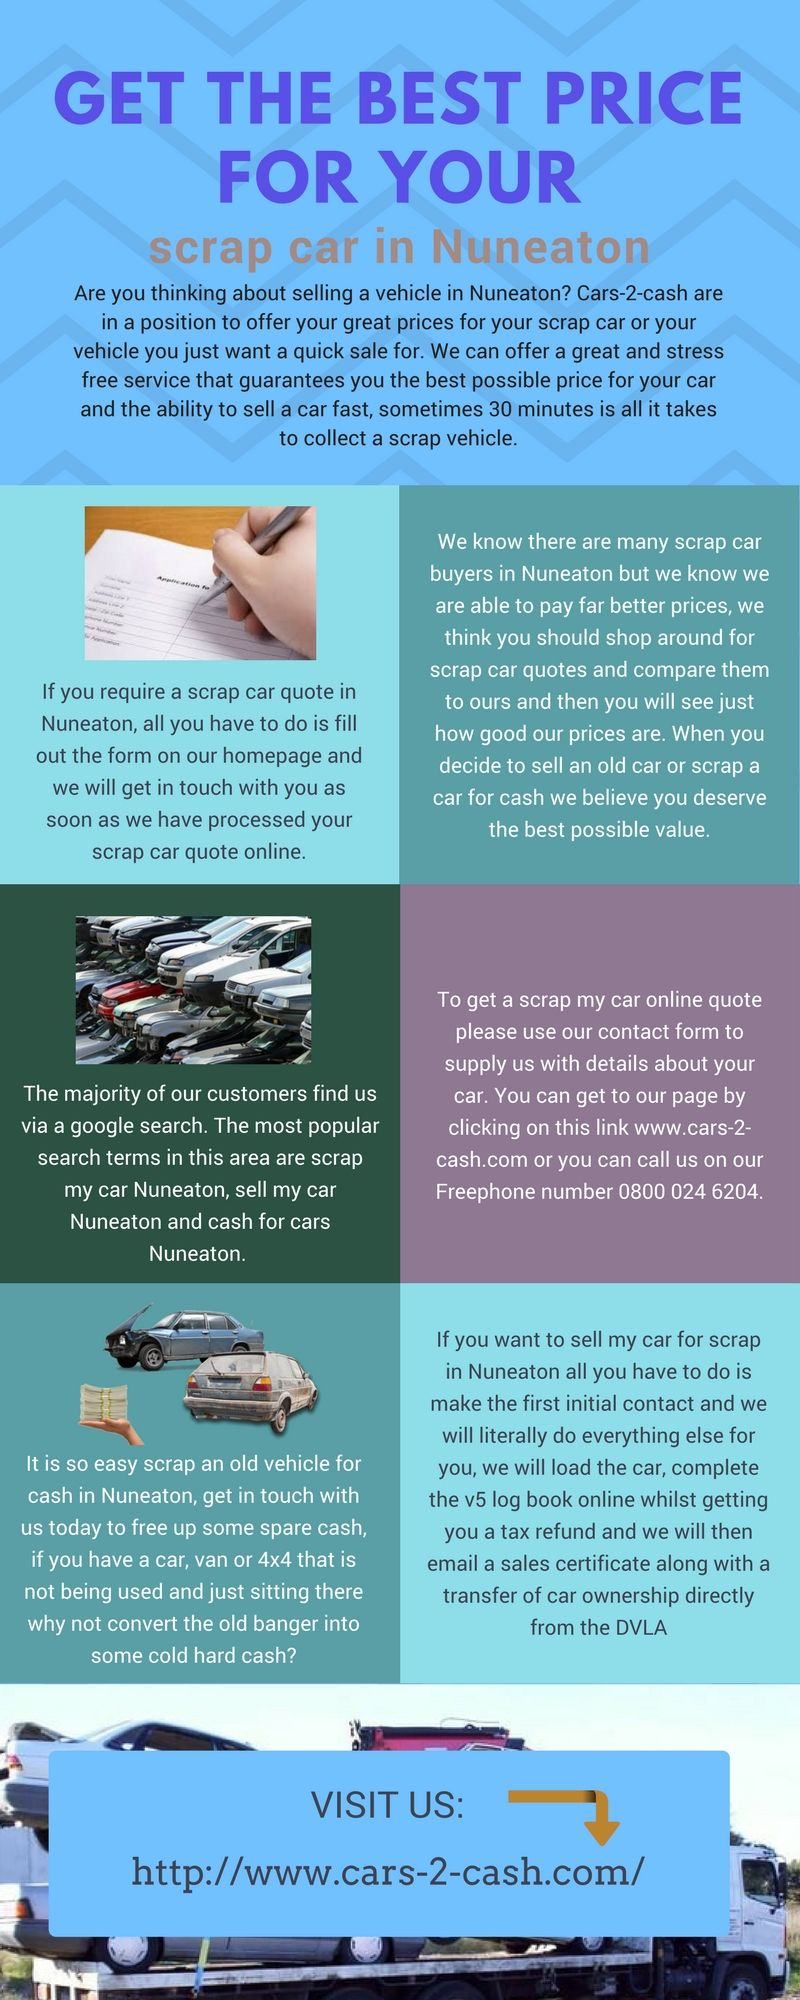 Are You Thinking About Selling A Vehicle In Nuneaton Cars 2 Cash